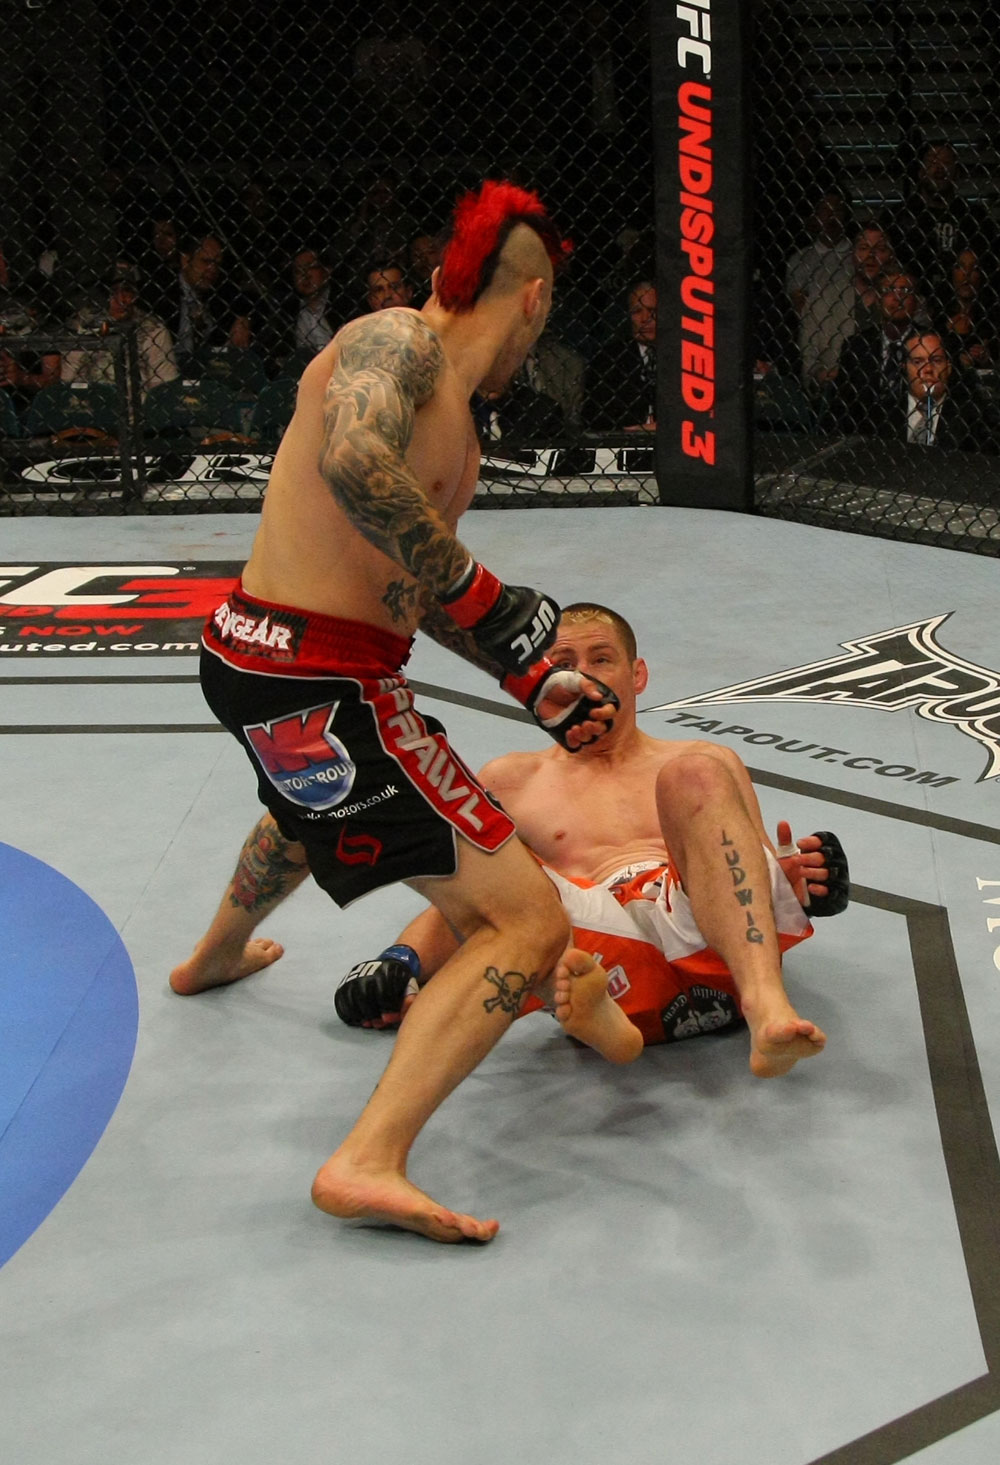 LAS VEGAS, NV - MAY 26:  Dan Hardy (top) moves in to finish Duane Ludwig during a welterweight bout at UFC 146 at MGM Grand Garden Arena on May 26, 2012 in Las Vegas, Nevada.  (Photo by Donald Miralle/Zuffa LLC/Zuffa LLC via Getty Images)